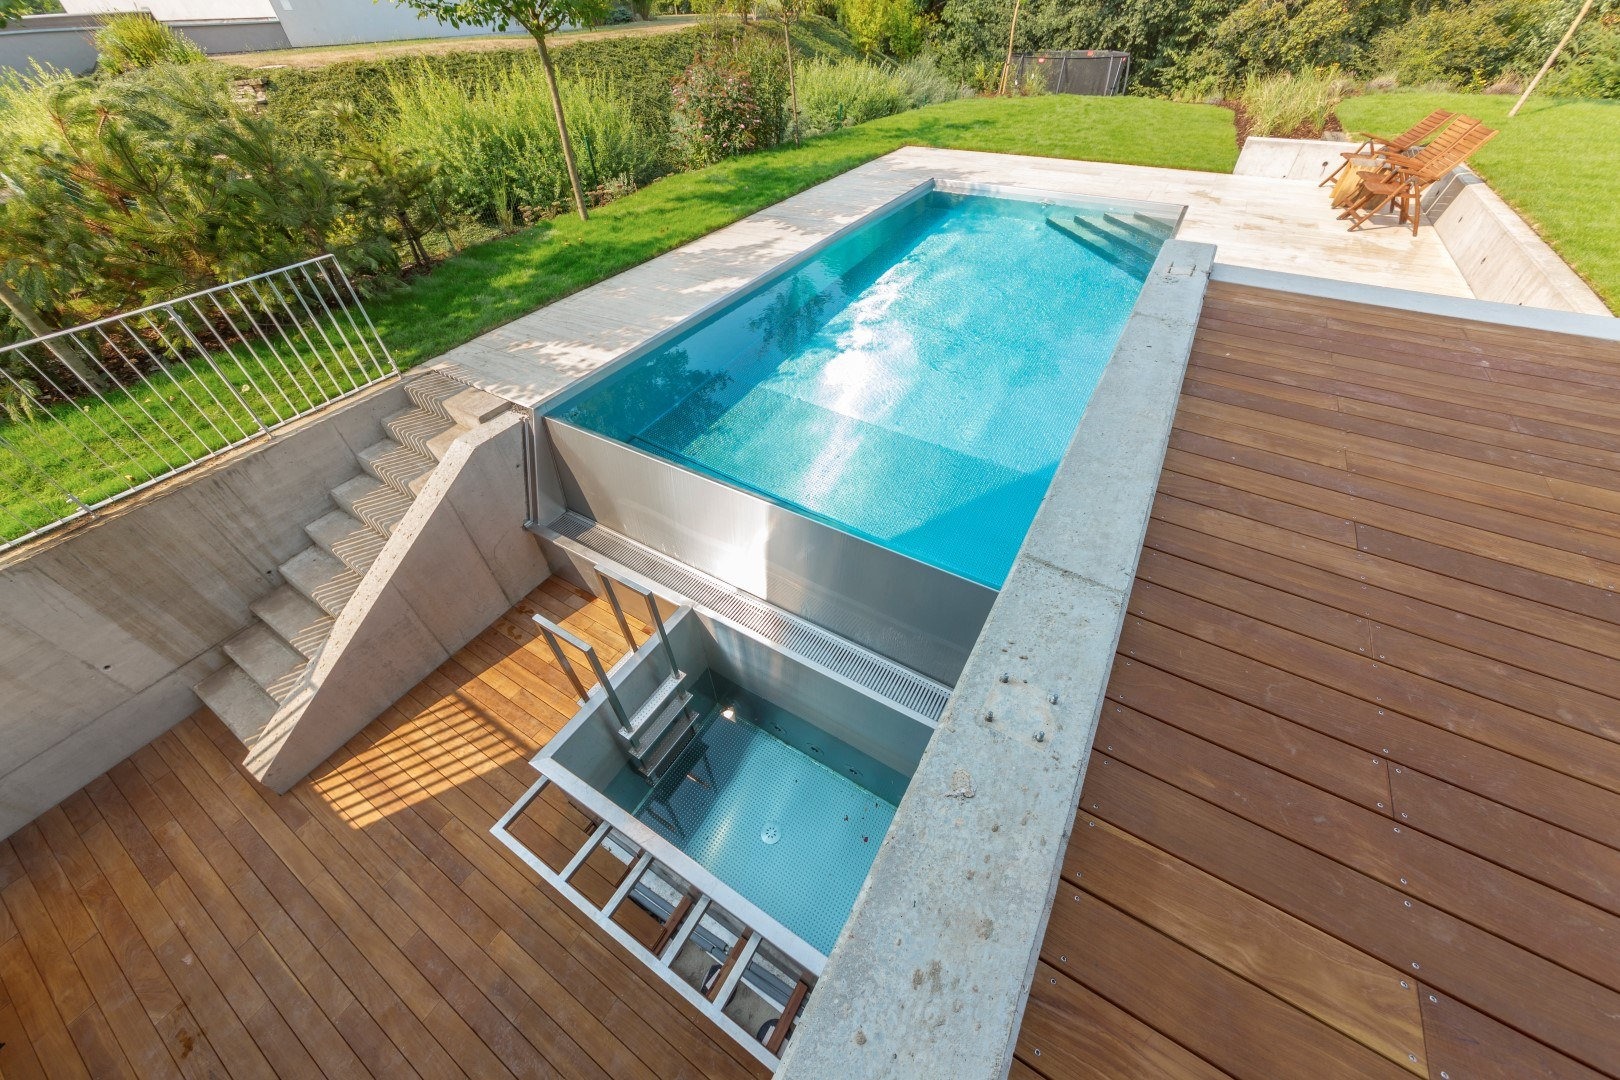 WHY CHOOSE A STAINLESS-STEEL POOL